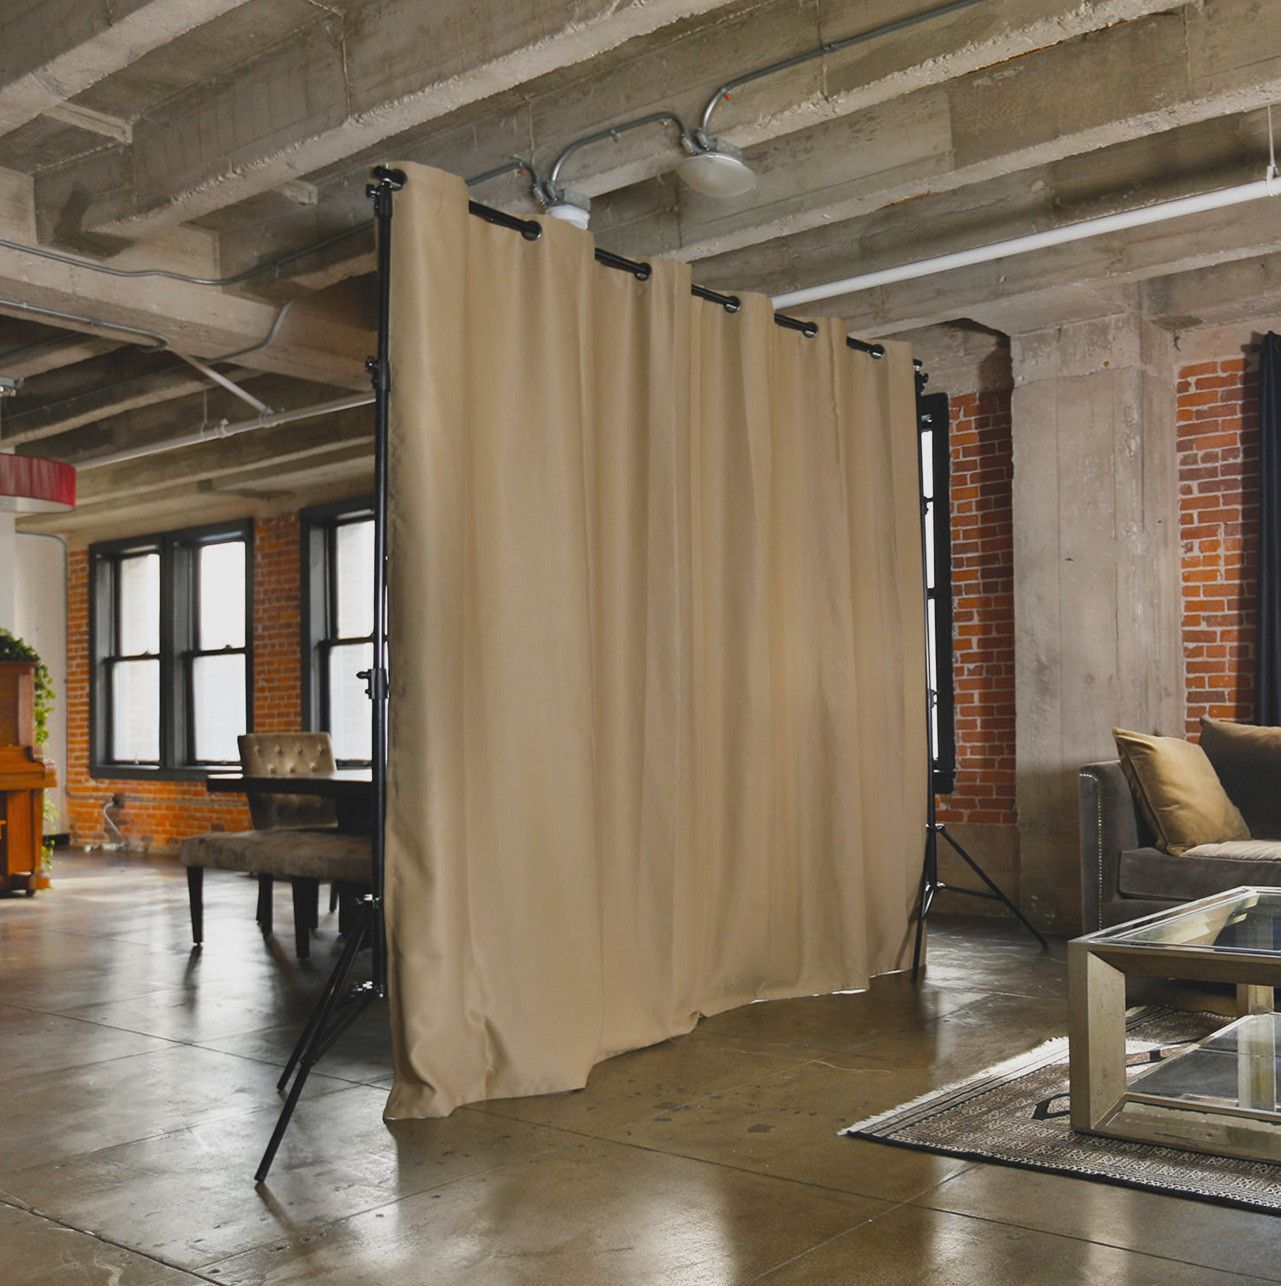 Free standing curtain room dividers - Freestanding Room Divider Kits